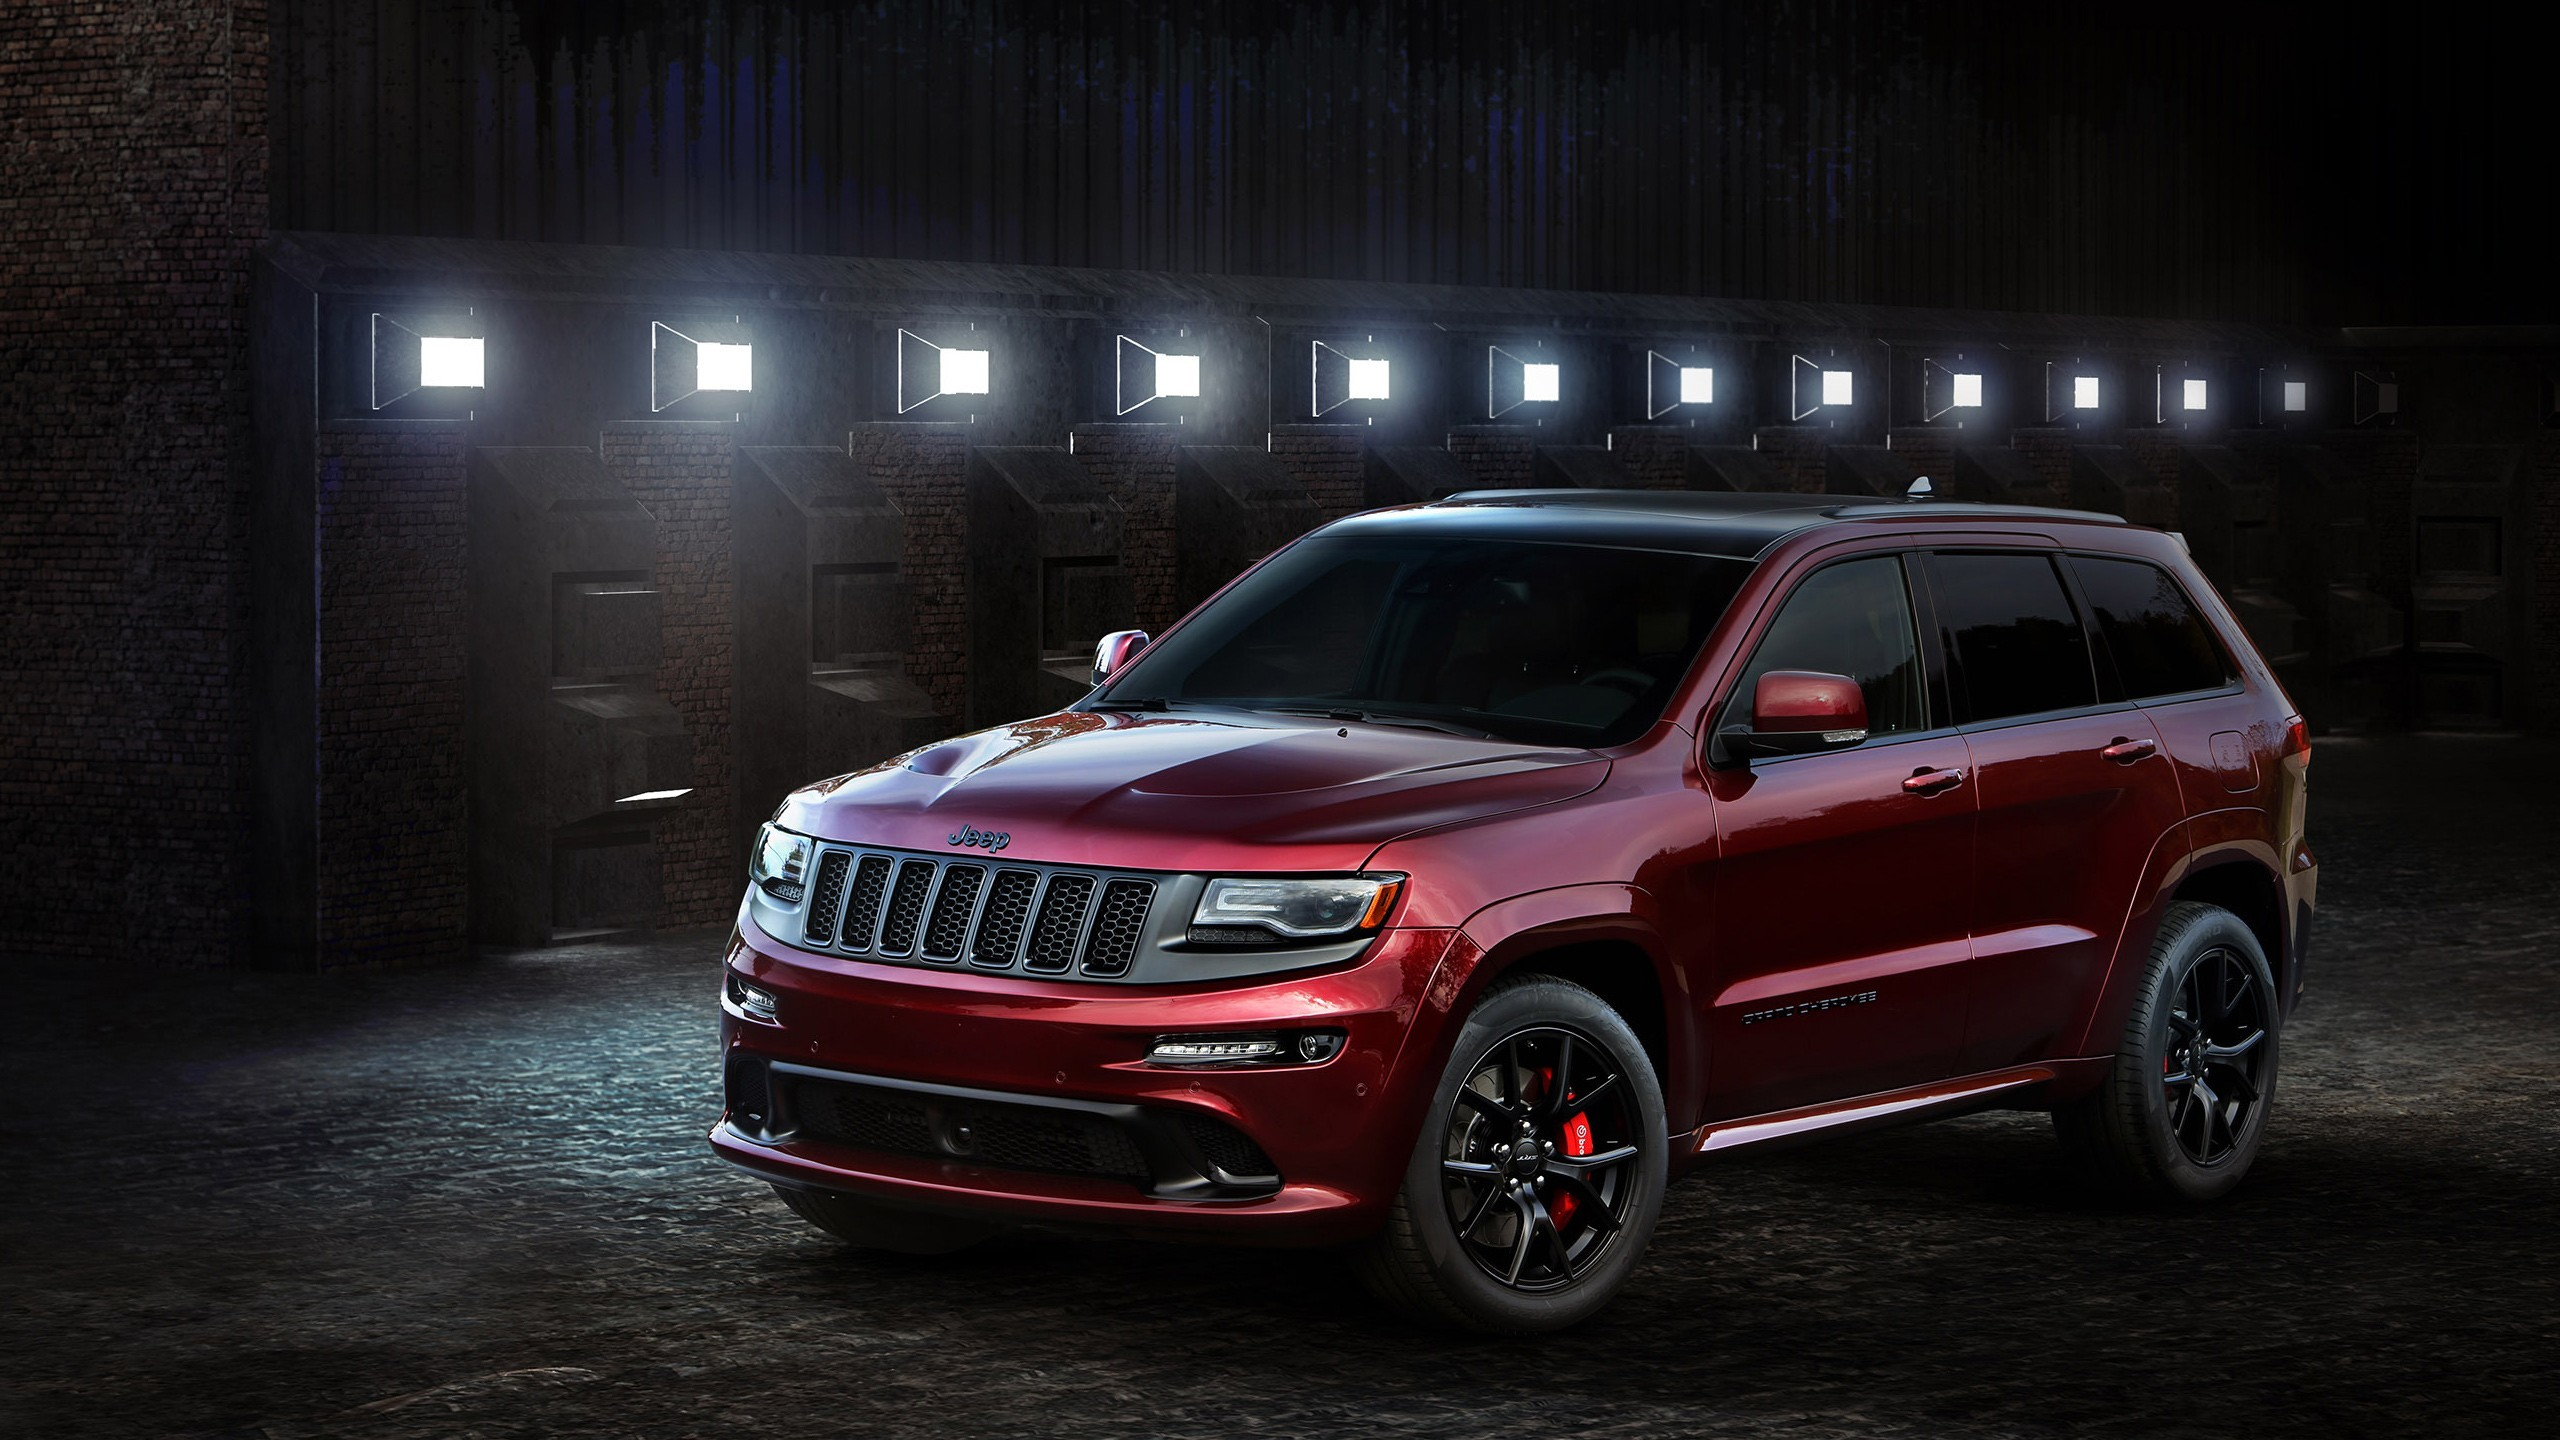 Res: 2560x1440, Automotive / Cars / Jeep Grand Cherokee Wallpaper